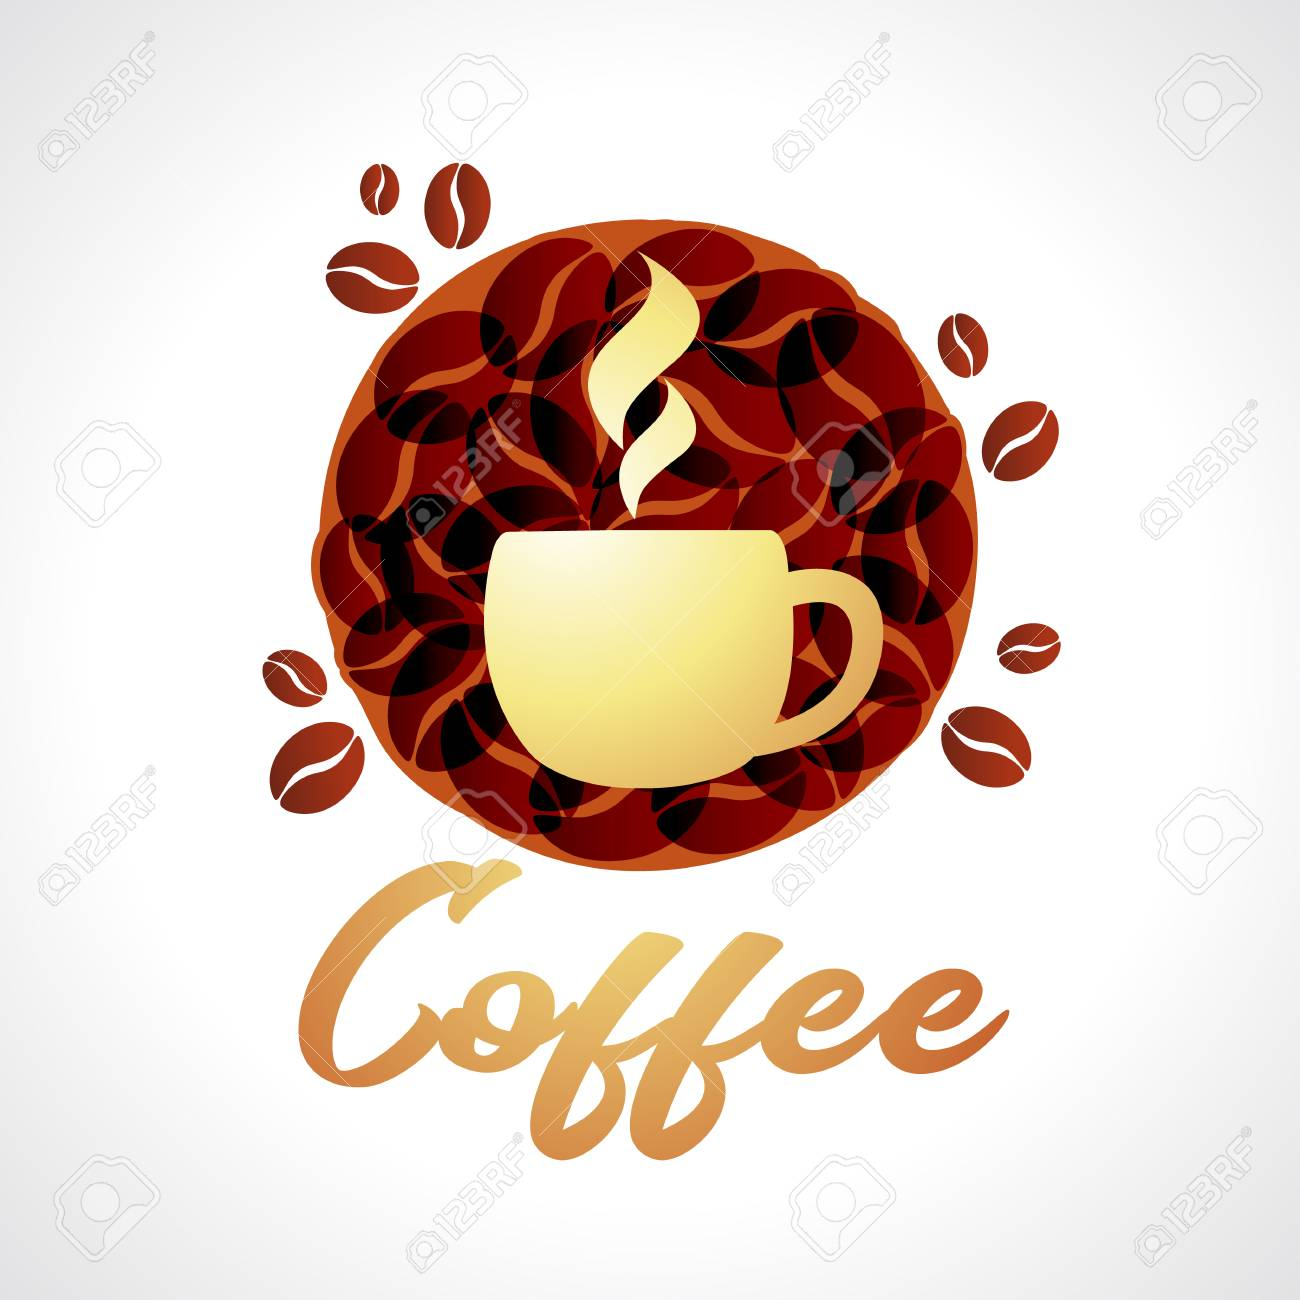 coffe grace cafe logo coffee icon vector illustration emblem